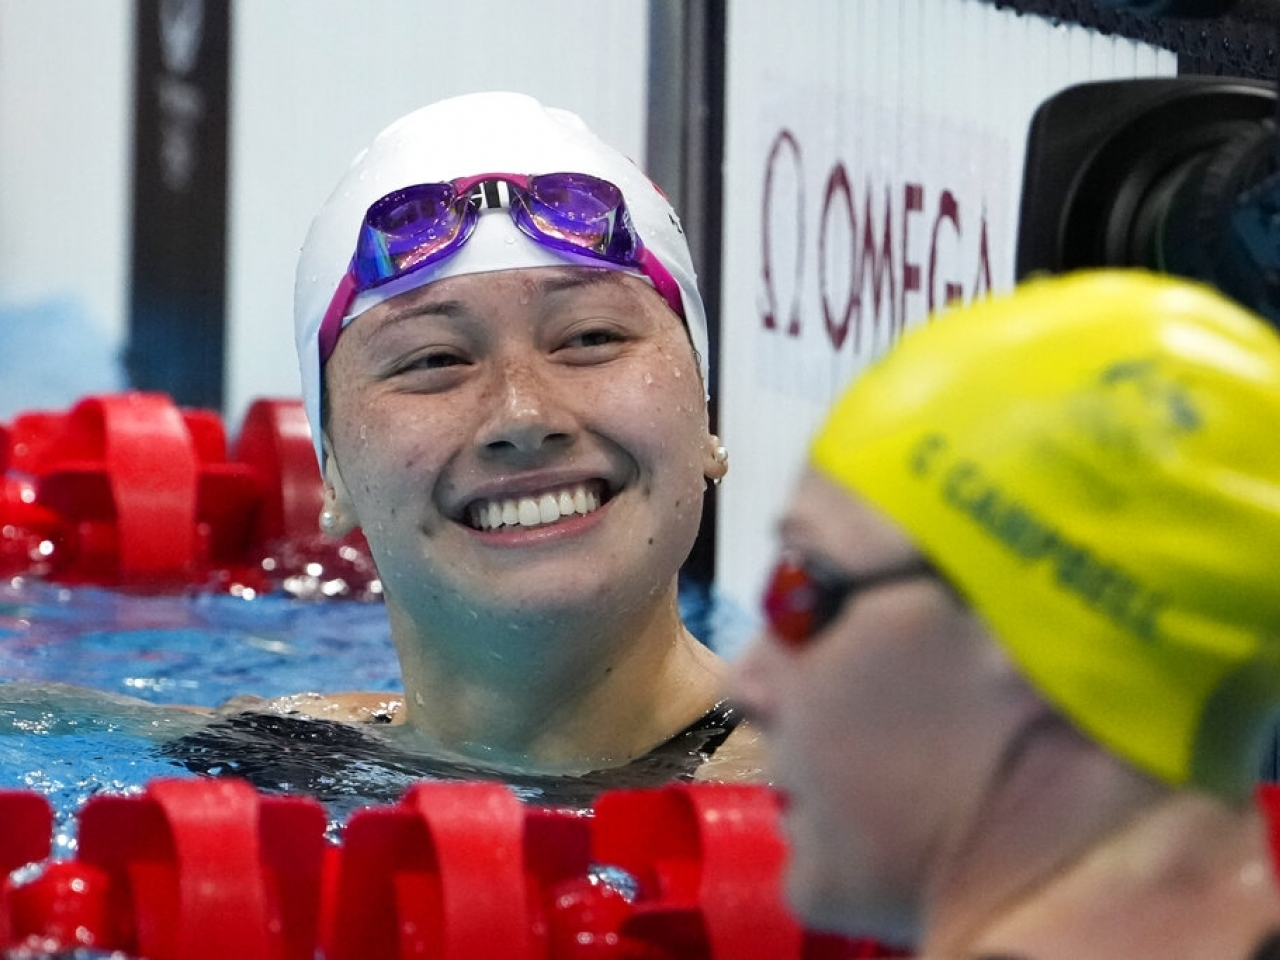 Siobhan Haughey was all smiles after winning her 100-metre freestyle semifinal at the Tokyo Olympics. Photo: AP